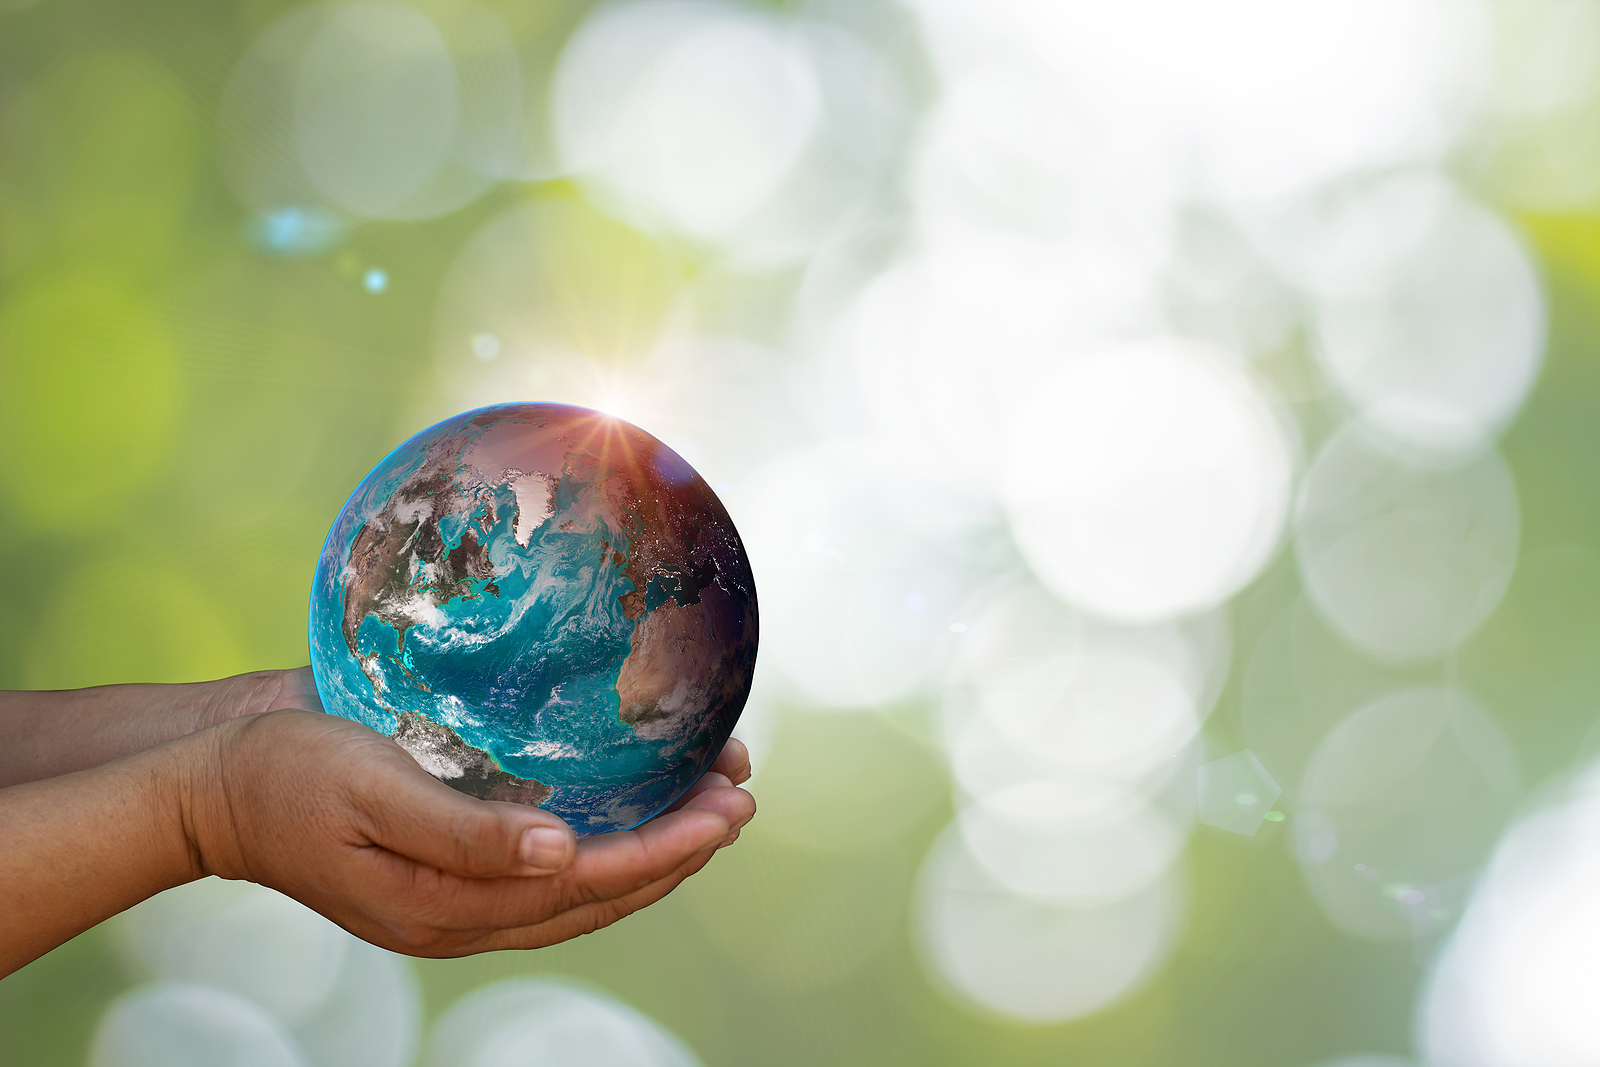 Earth Was Holding In Human Hands On Green Nature Blurred Background